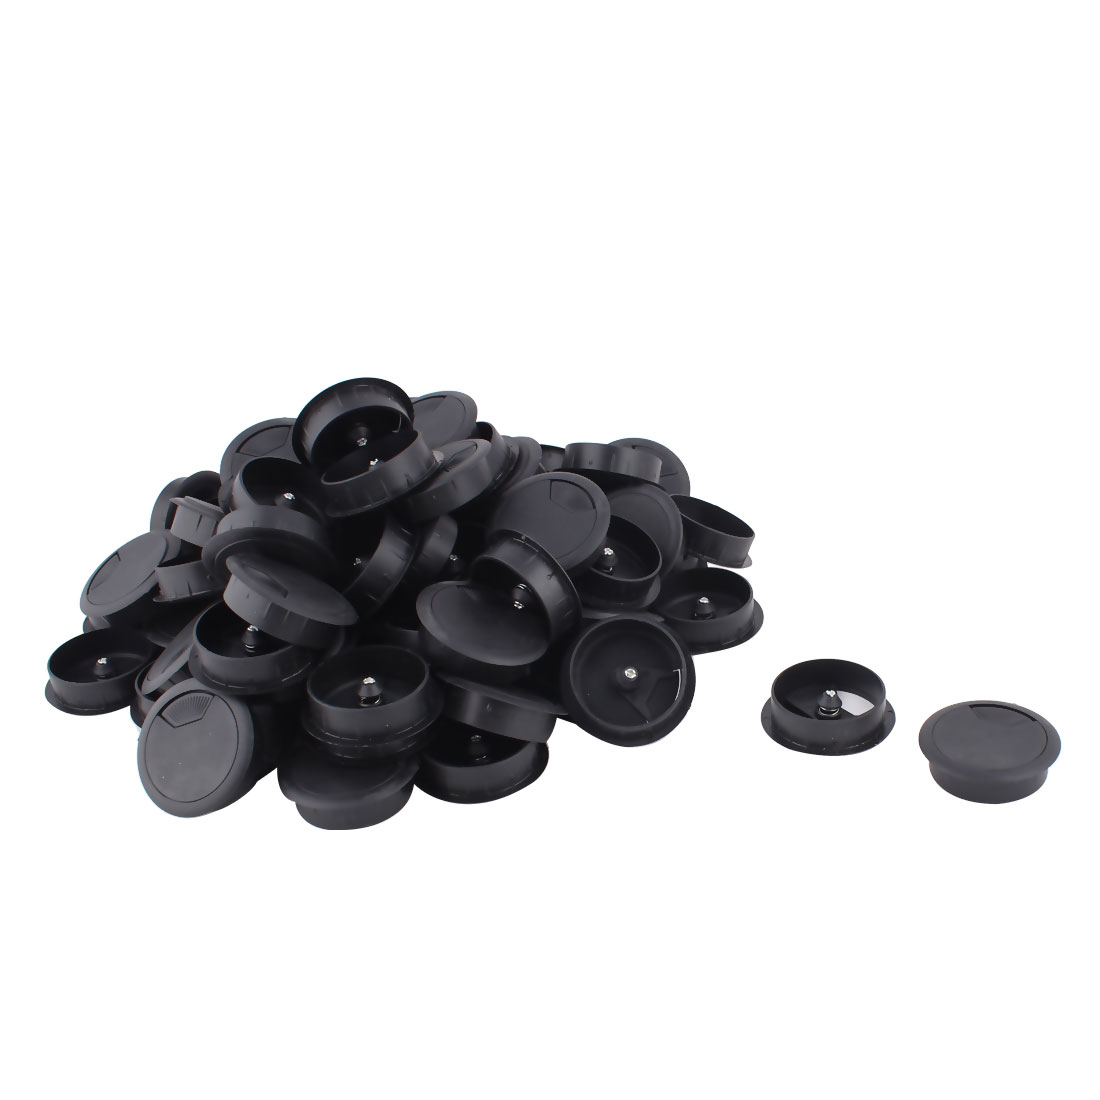 Computer Desk Table Plastic Grommet Wire Cord Cable Hole Cover Black 60mm Dia 100pcs